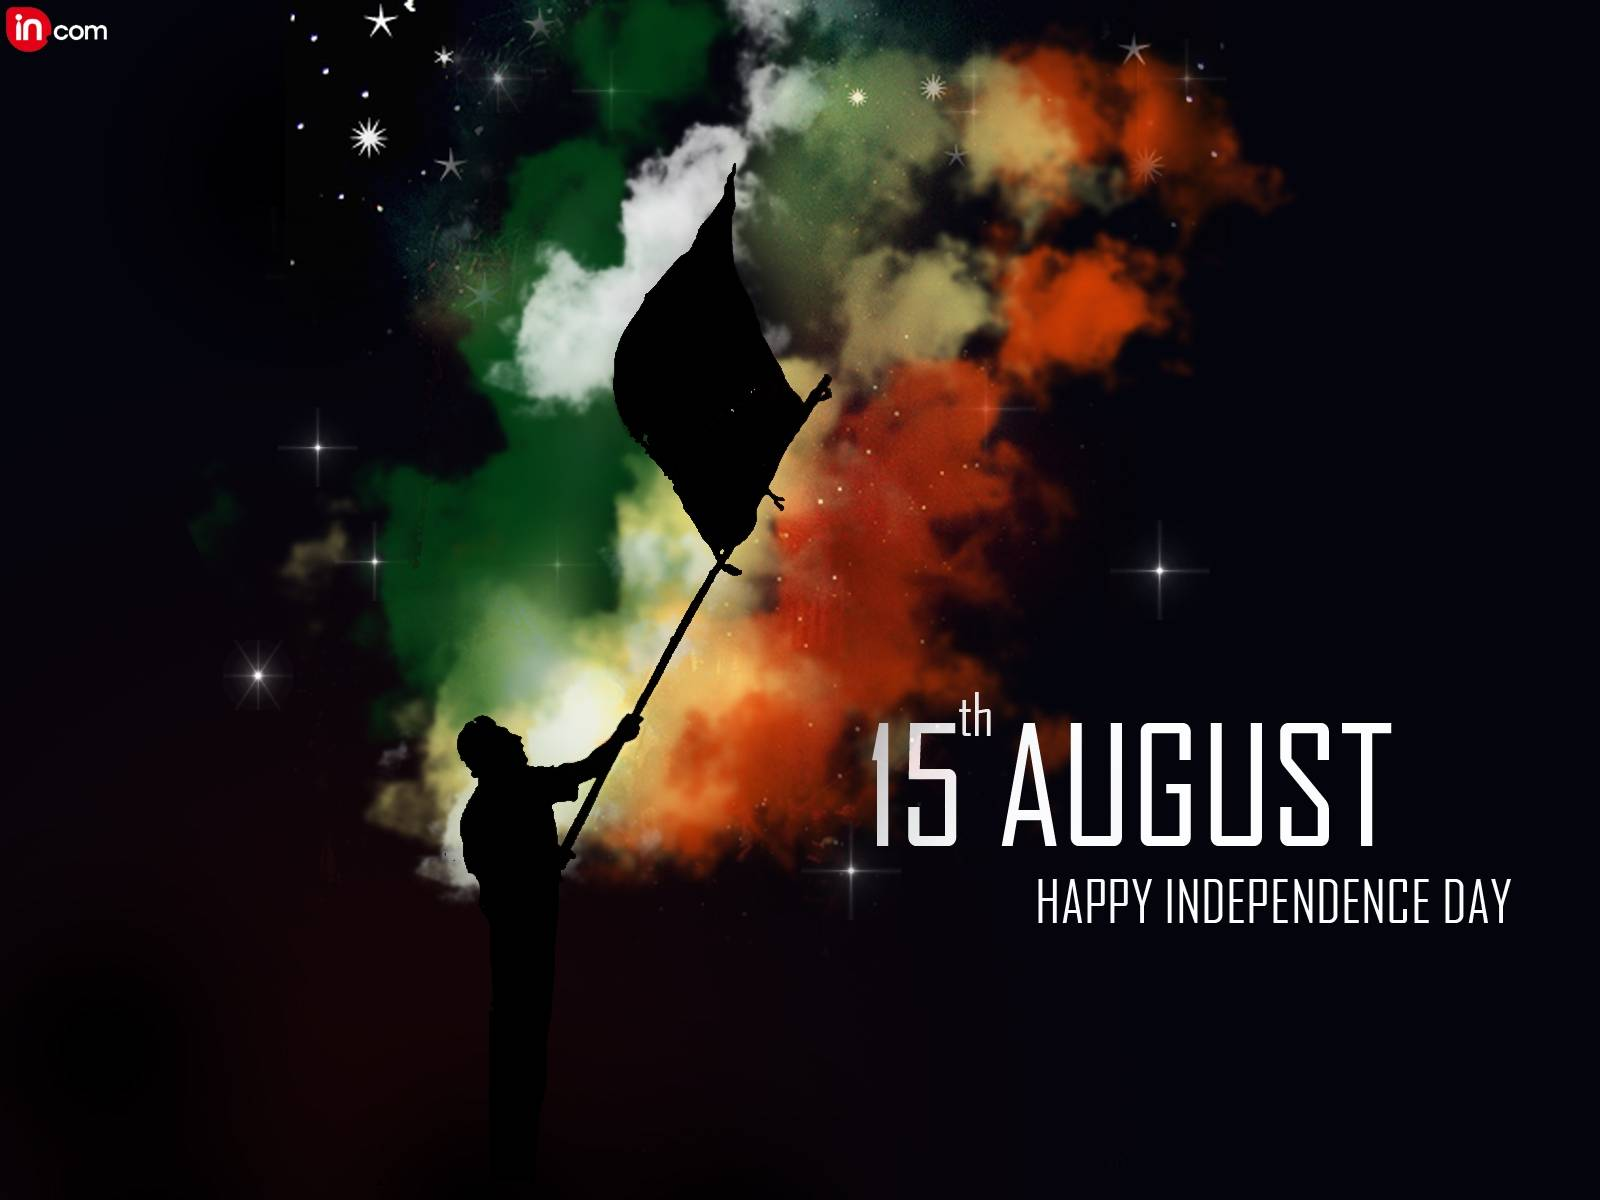 indian independence day hd pic wallpapers 2017